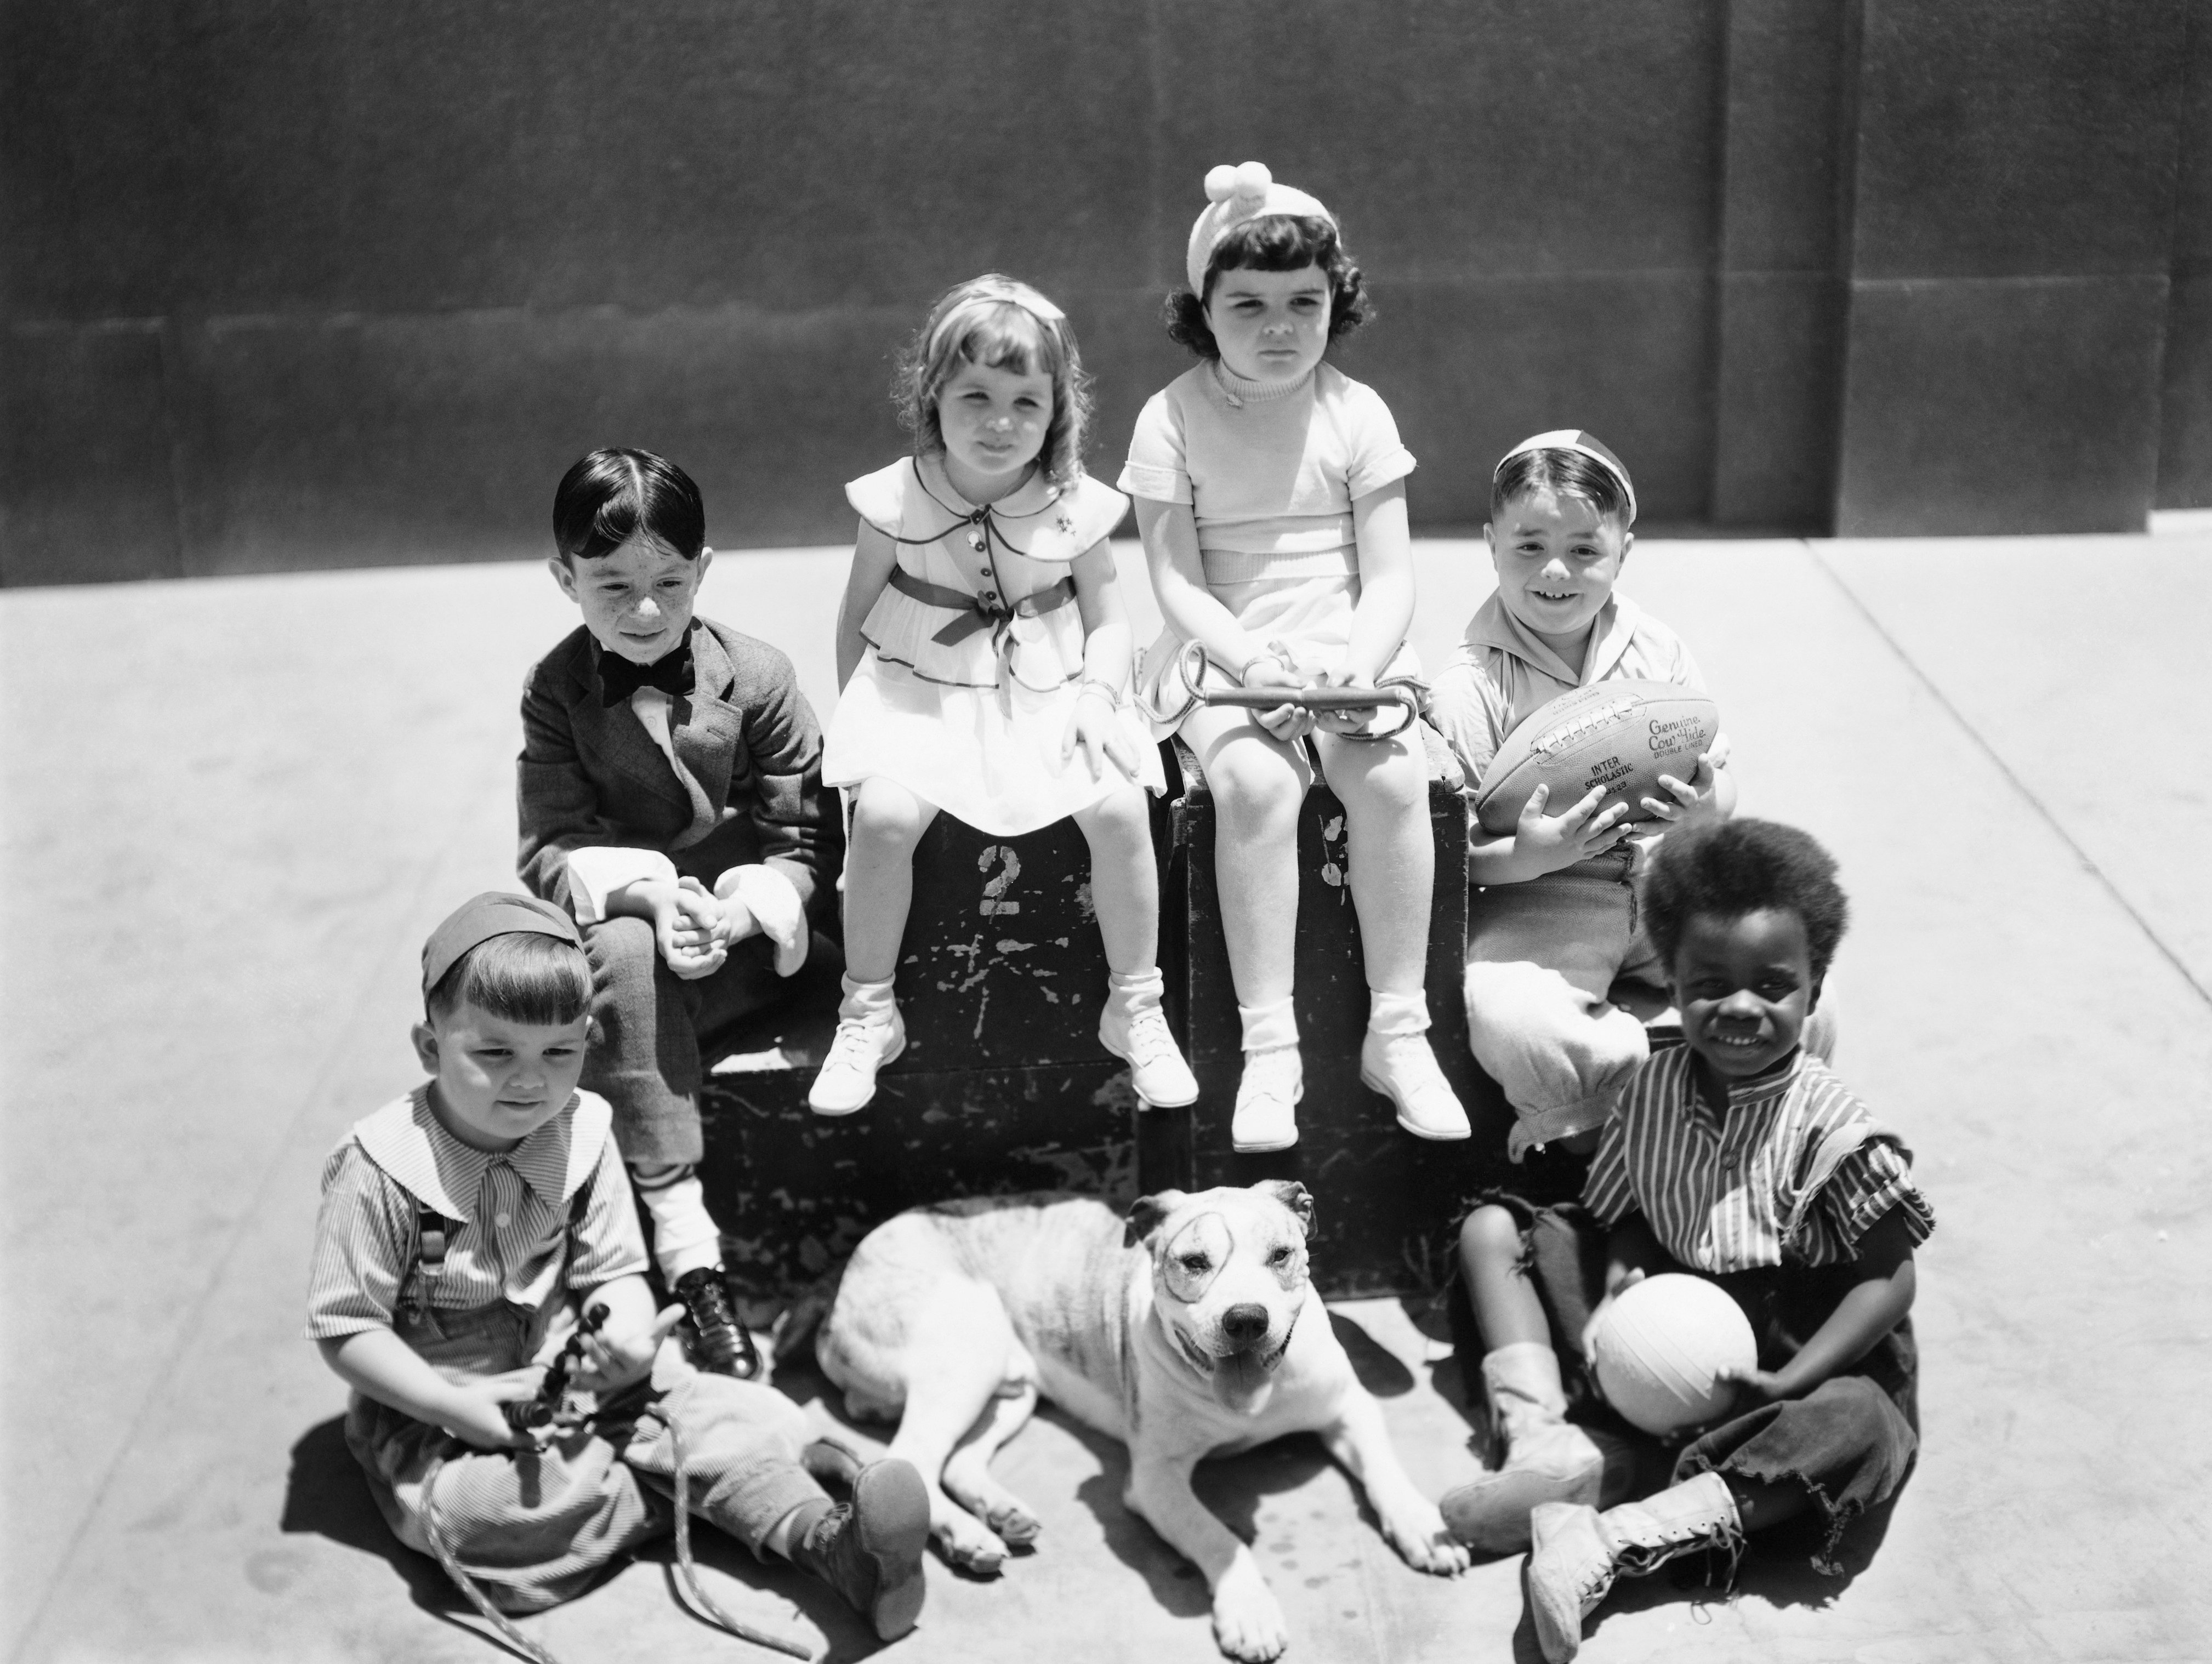 """The cast of """"Our Gang/Little Rascals"""" TV show, Hal Roach, MGM production. Spanky McFarland holding the football. 